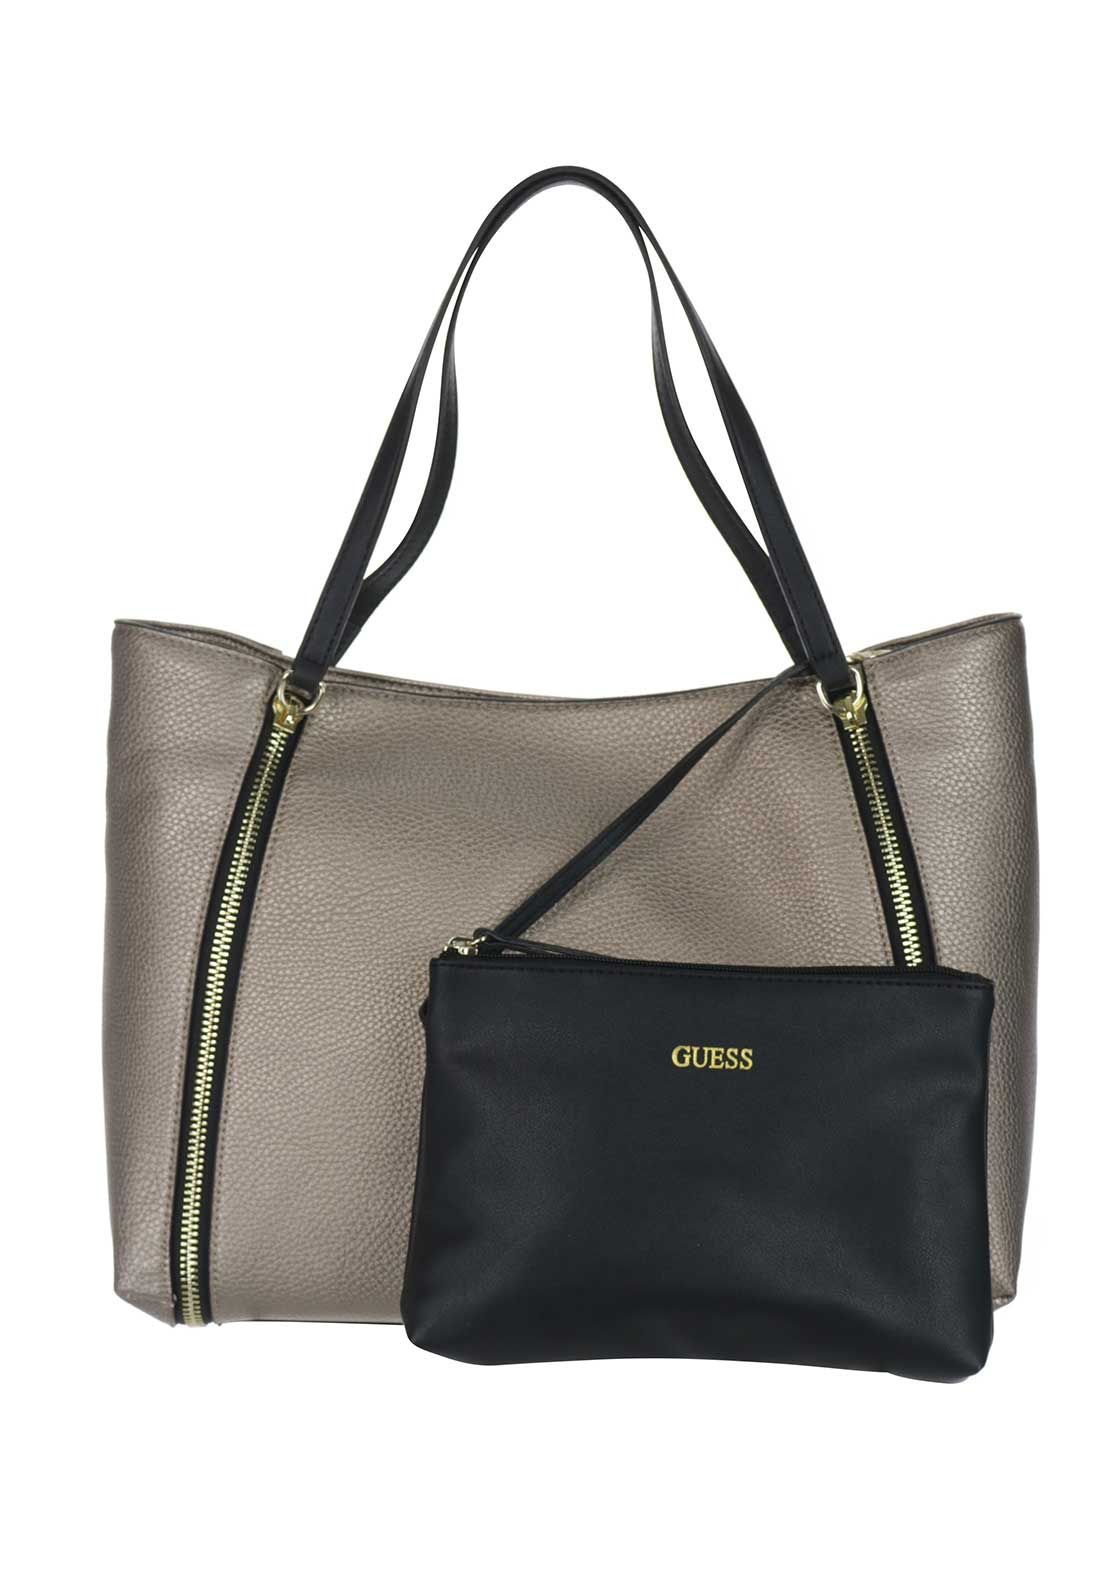 Guess Tote Bag, Pewter